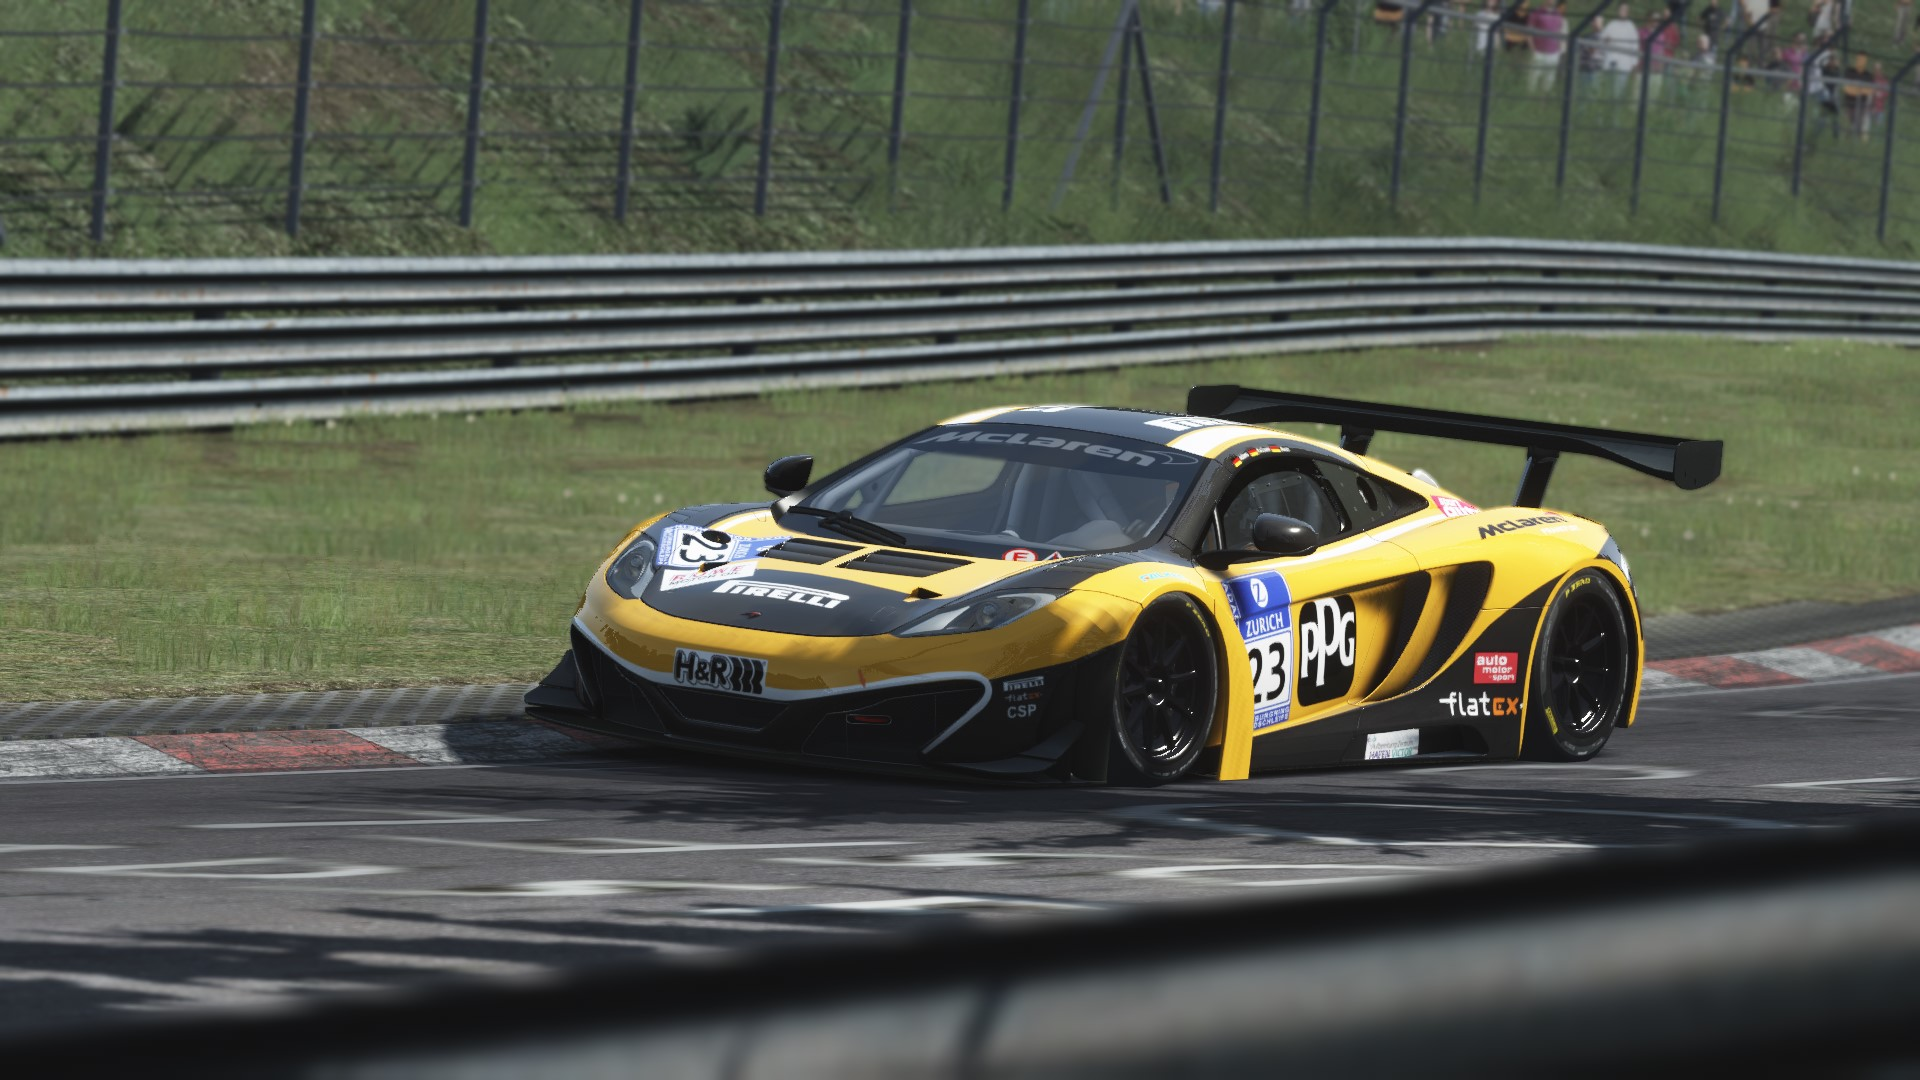 Screenshot_mclaren_mp412c_gt3_ks_nordschleife_13-3-115-15-28-46.jpg